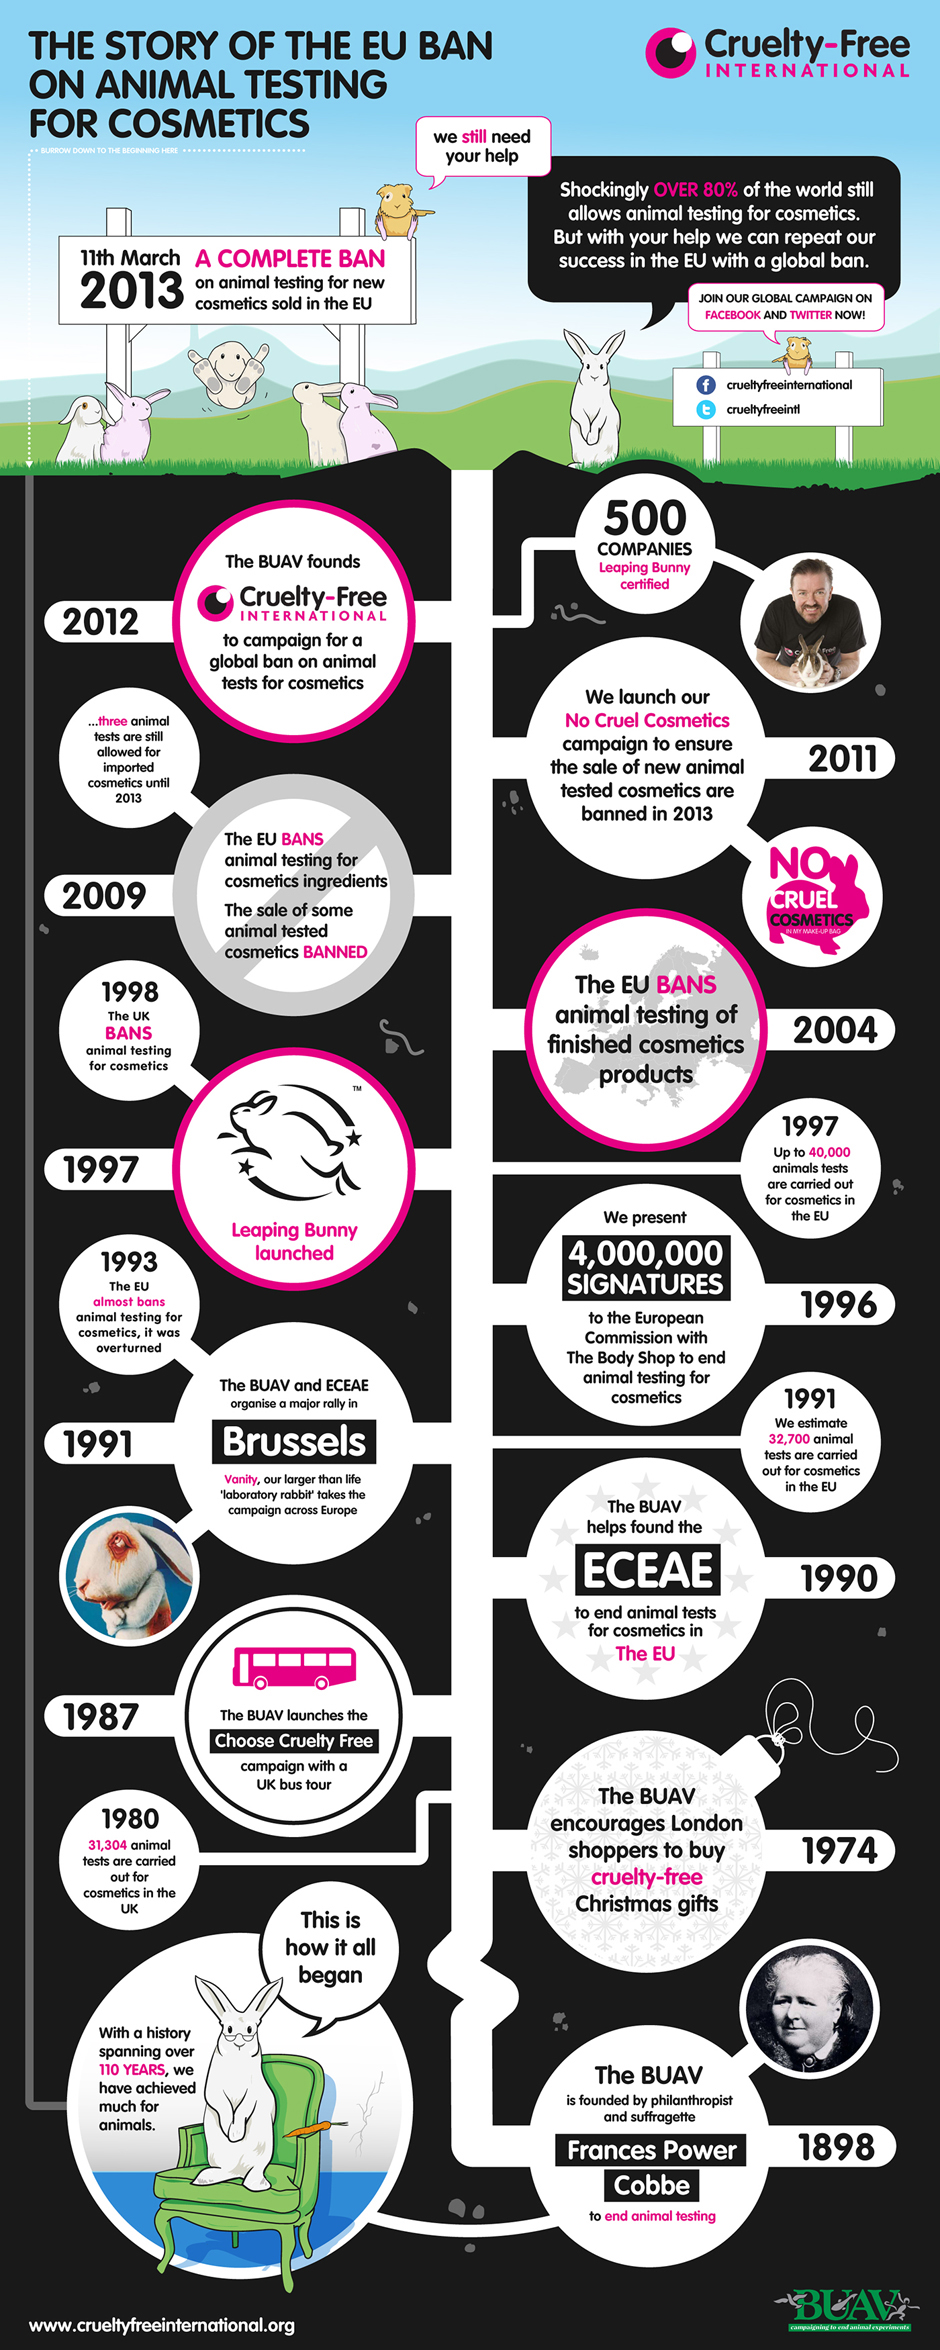 The BUAV / Cruelty Free International Timeline